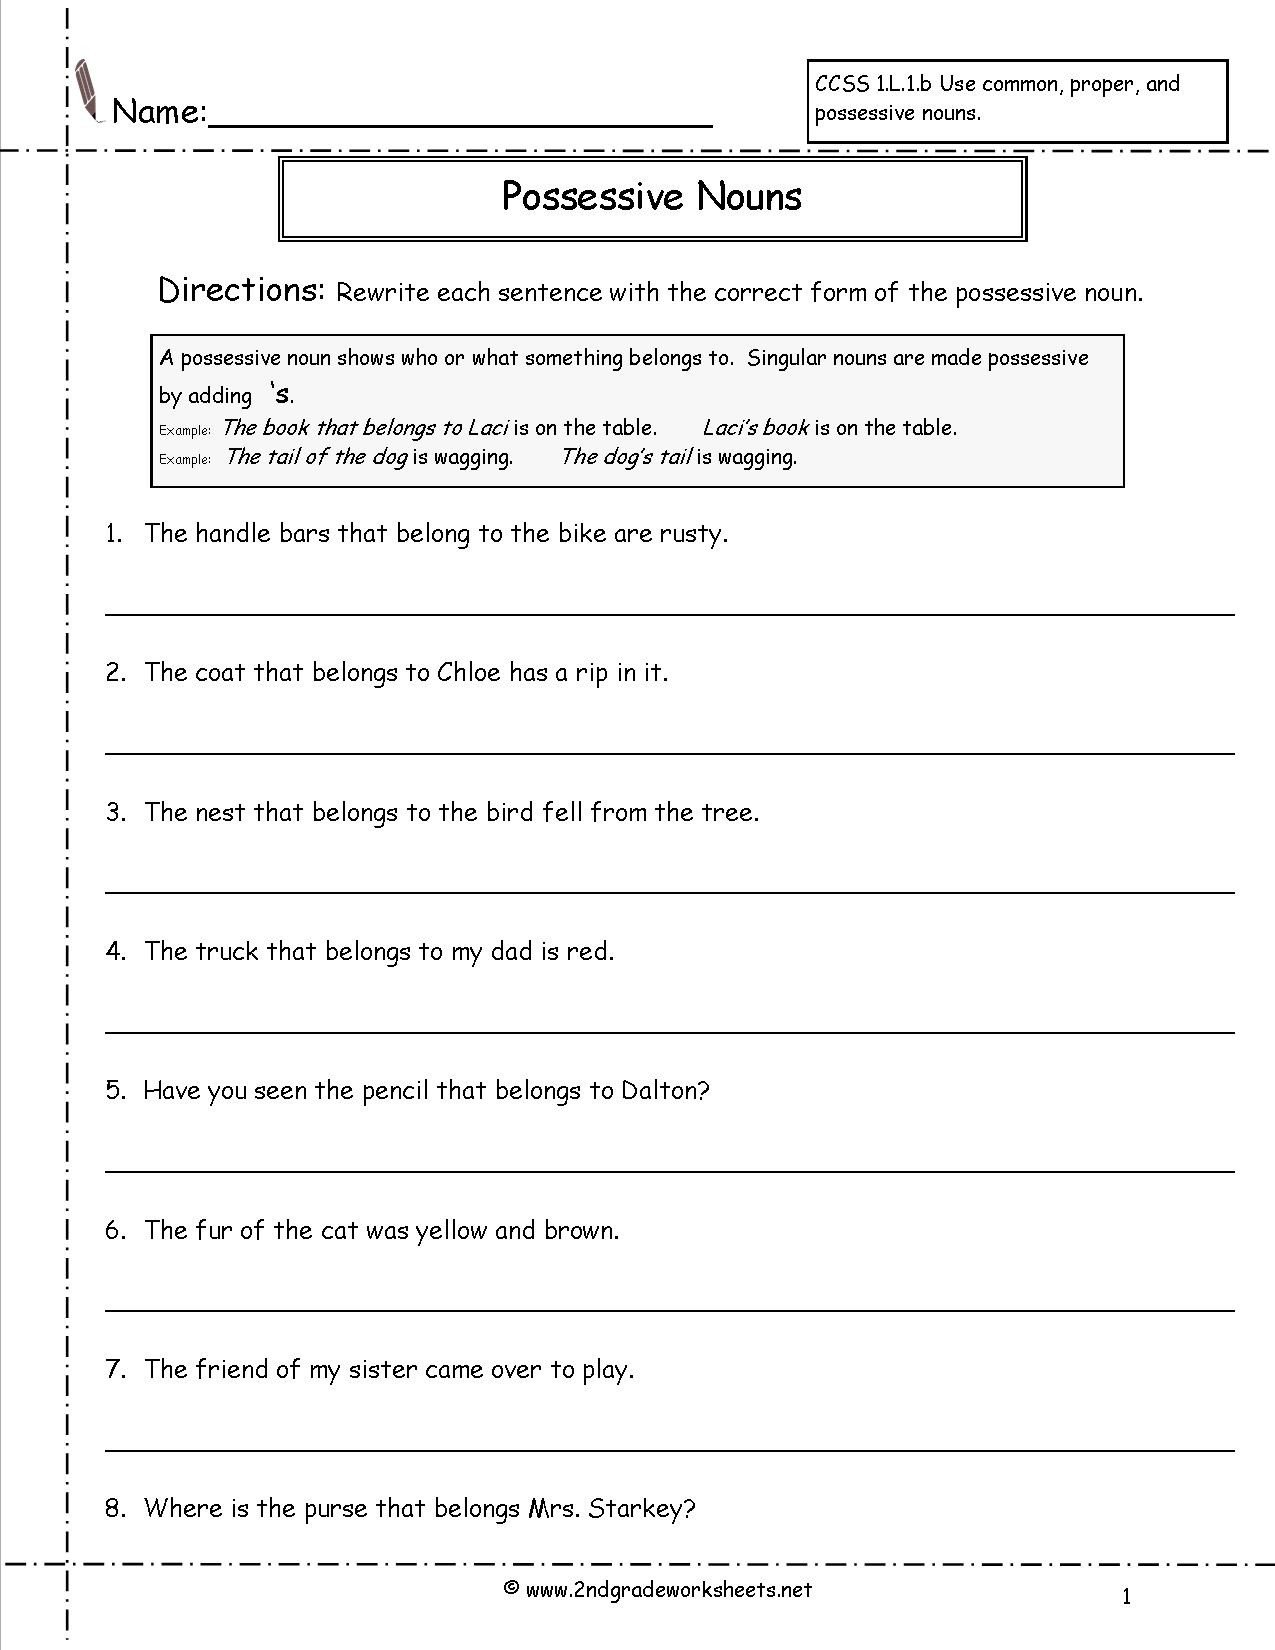 Pronoun Worksheets 2nd Grade Free Pronoun Worksheet for 2nd Grade